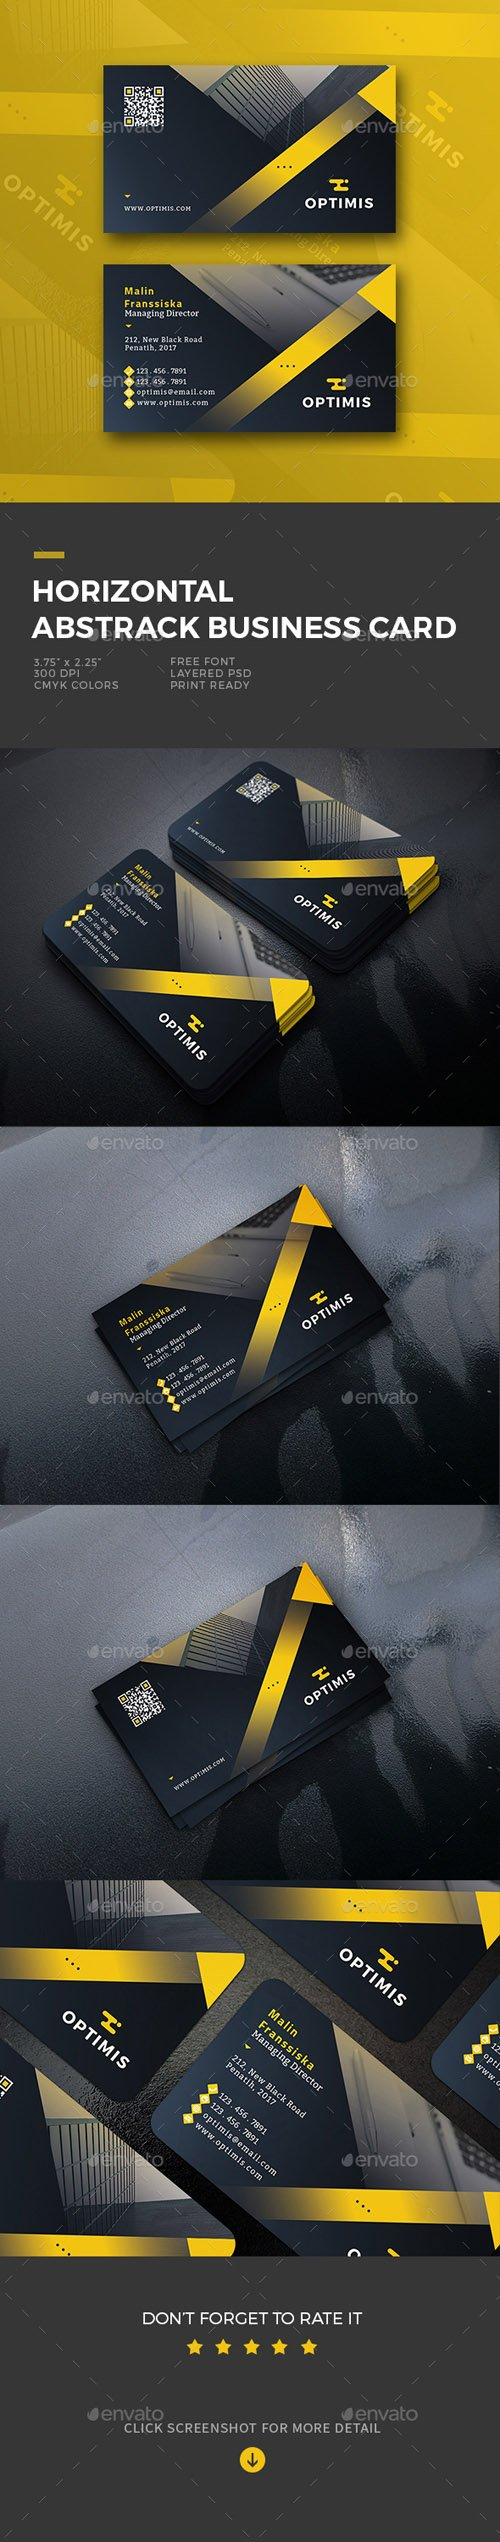 Horizontal Abstract Business Card 20042071